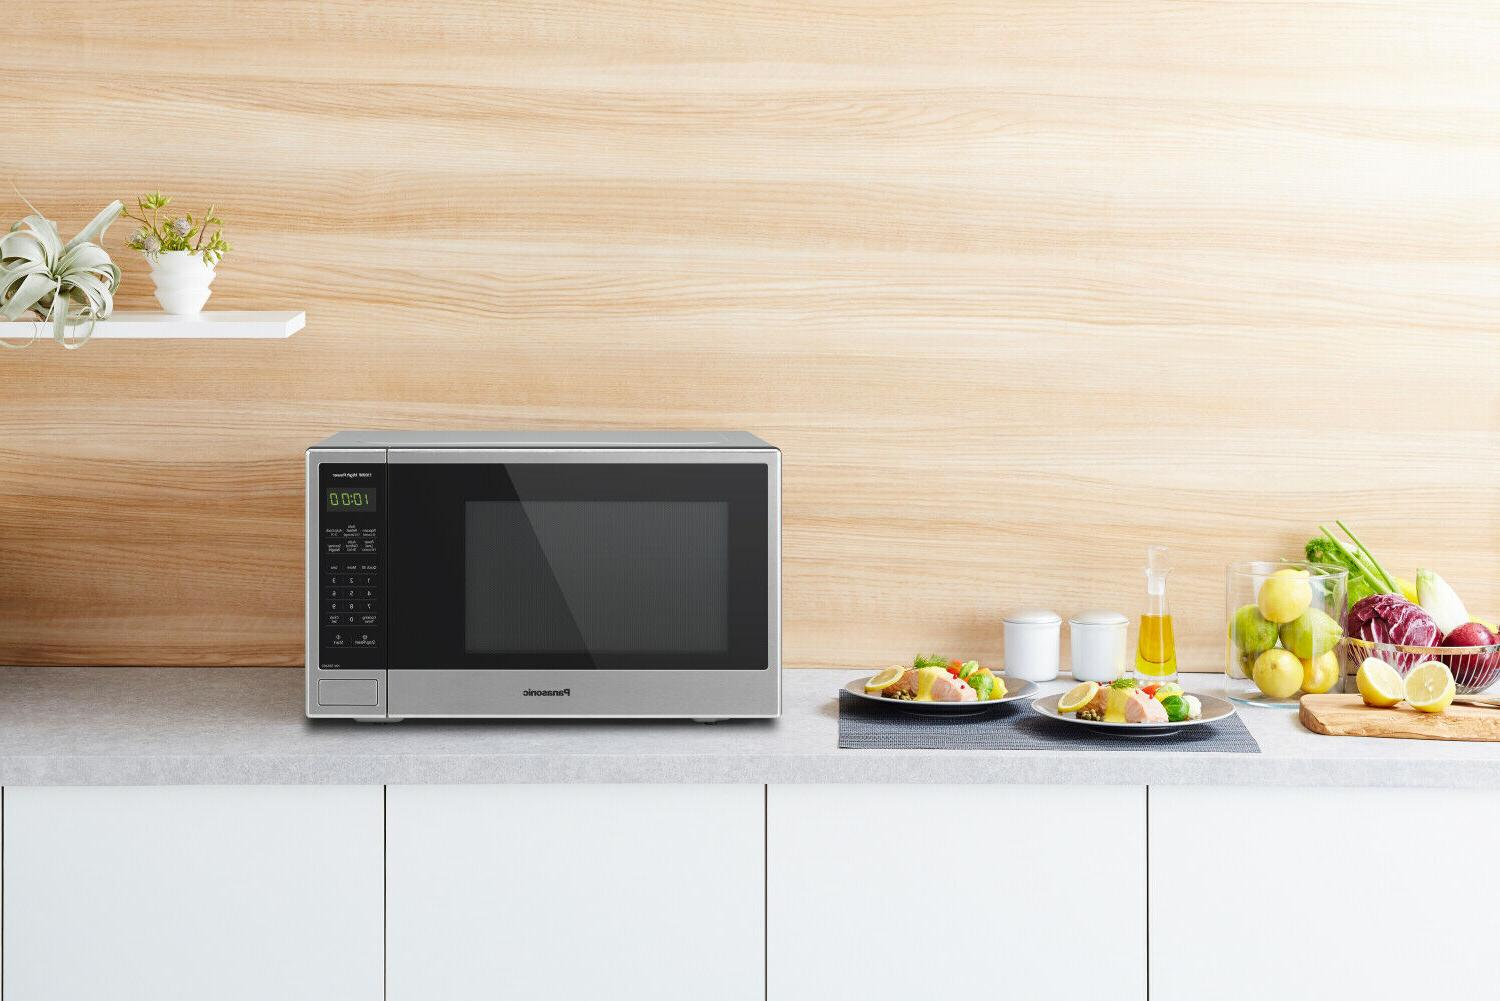 Panasonic 1.3 1100W Countertop Stainless Microwave with